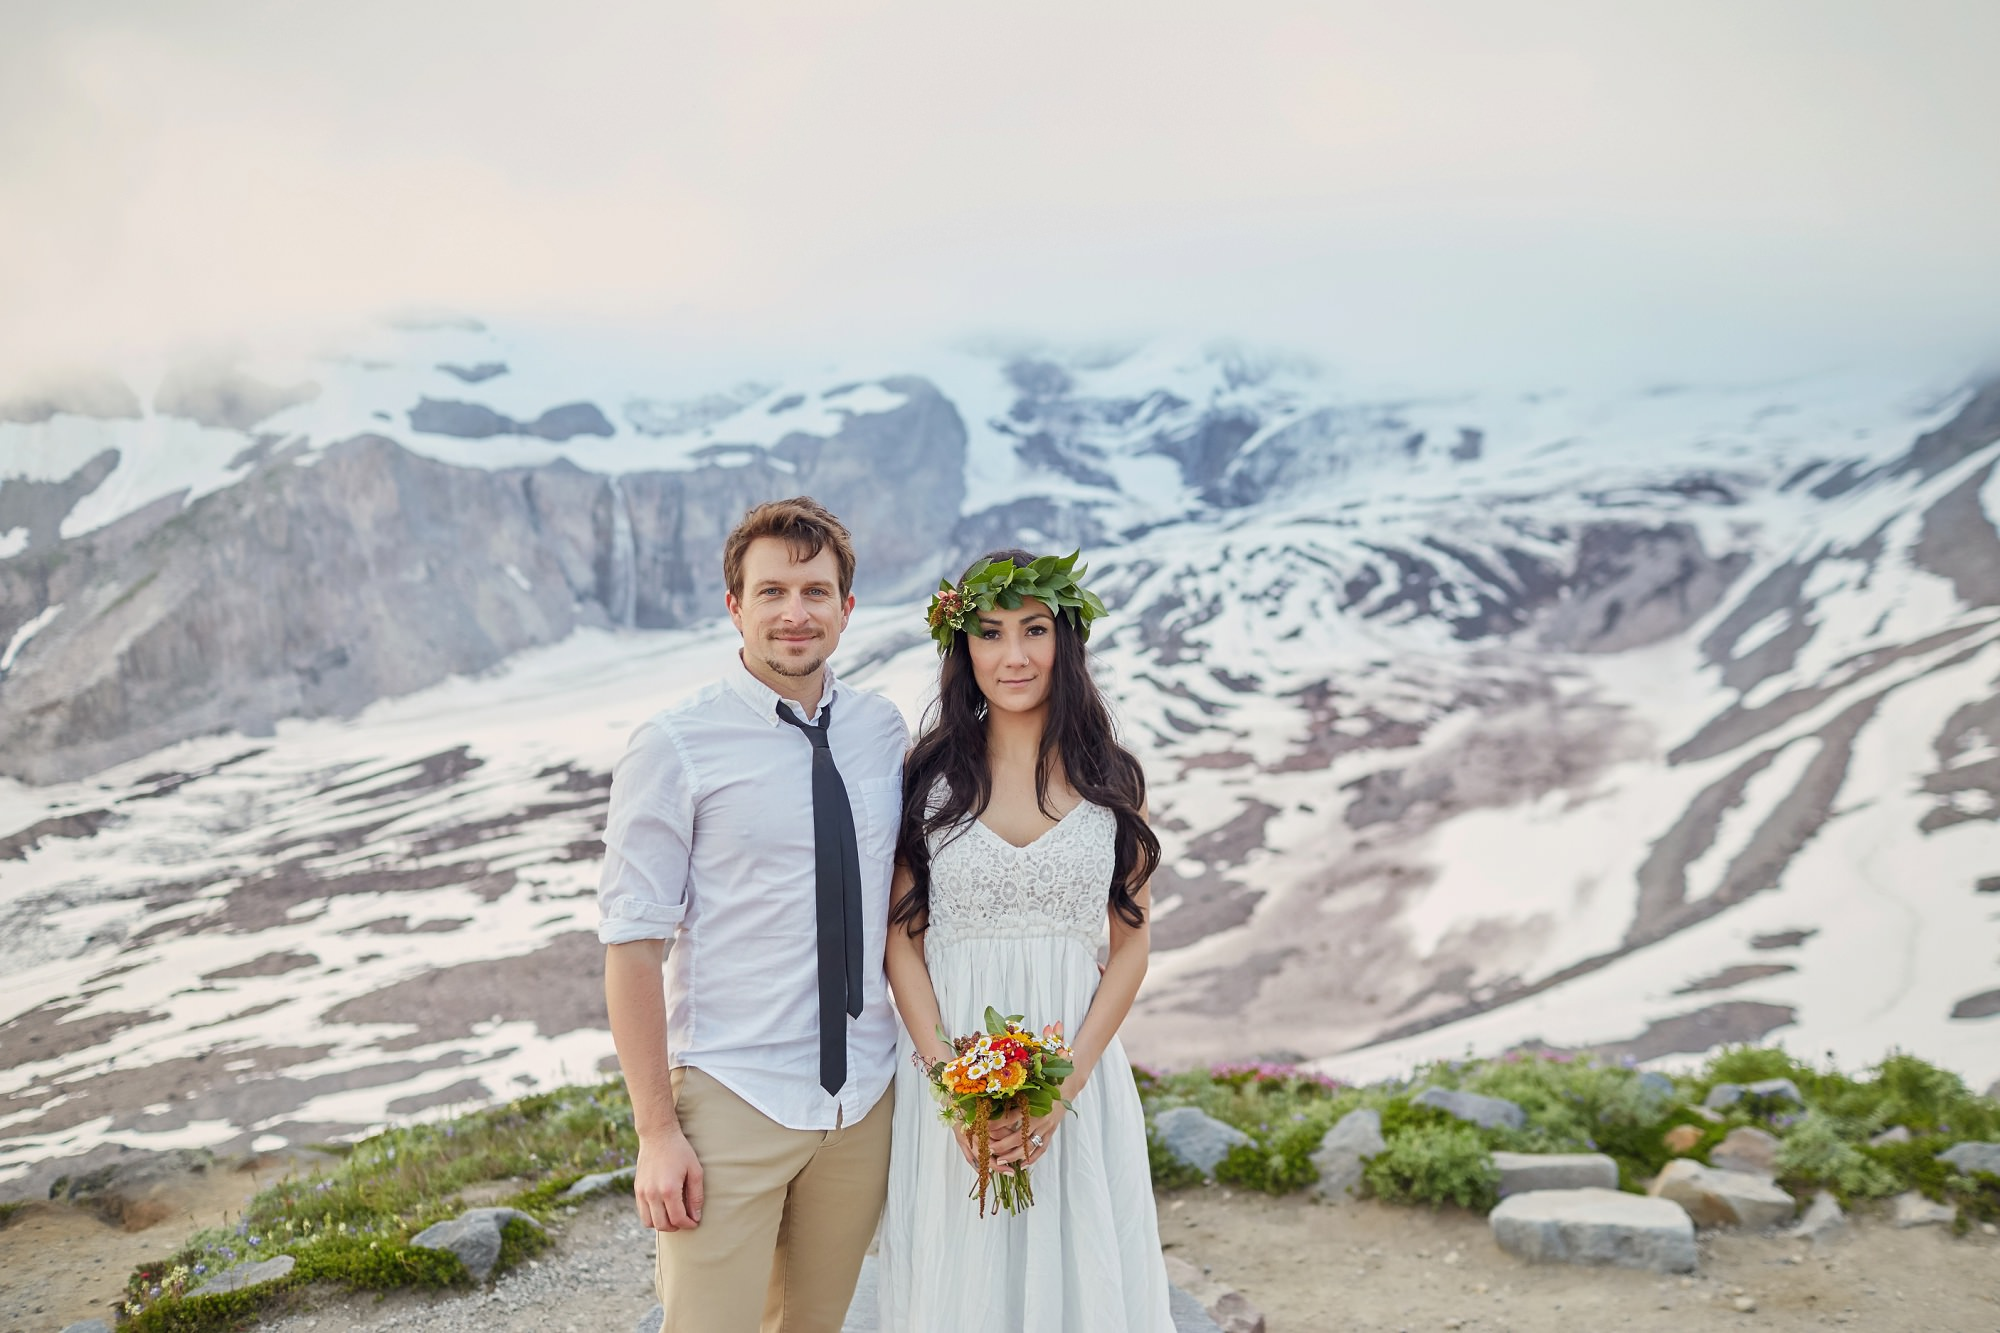 Mount Rainier Elopement Photo Shoot